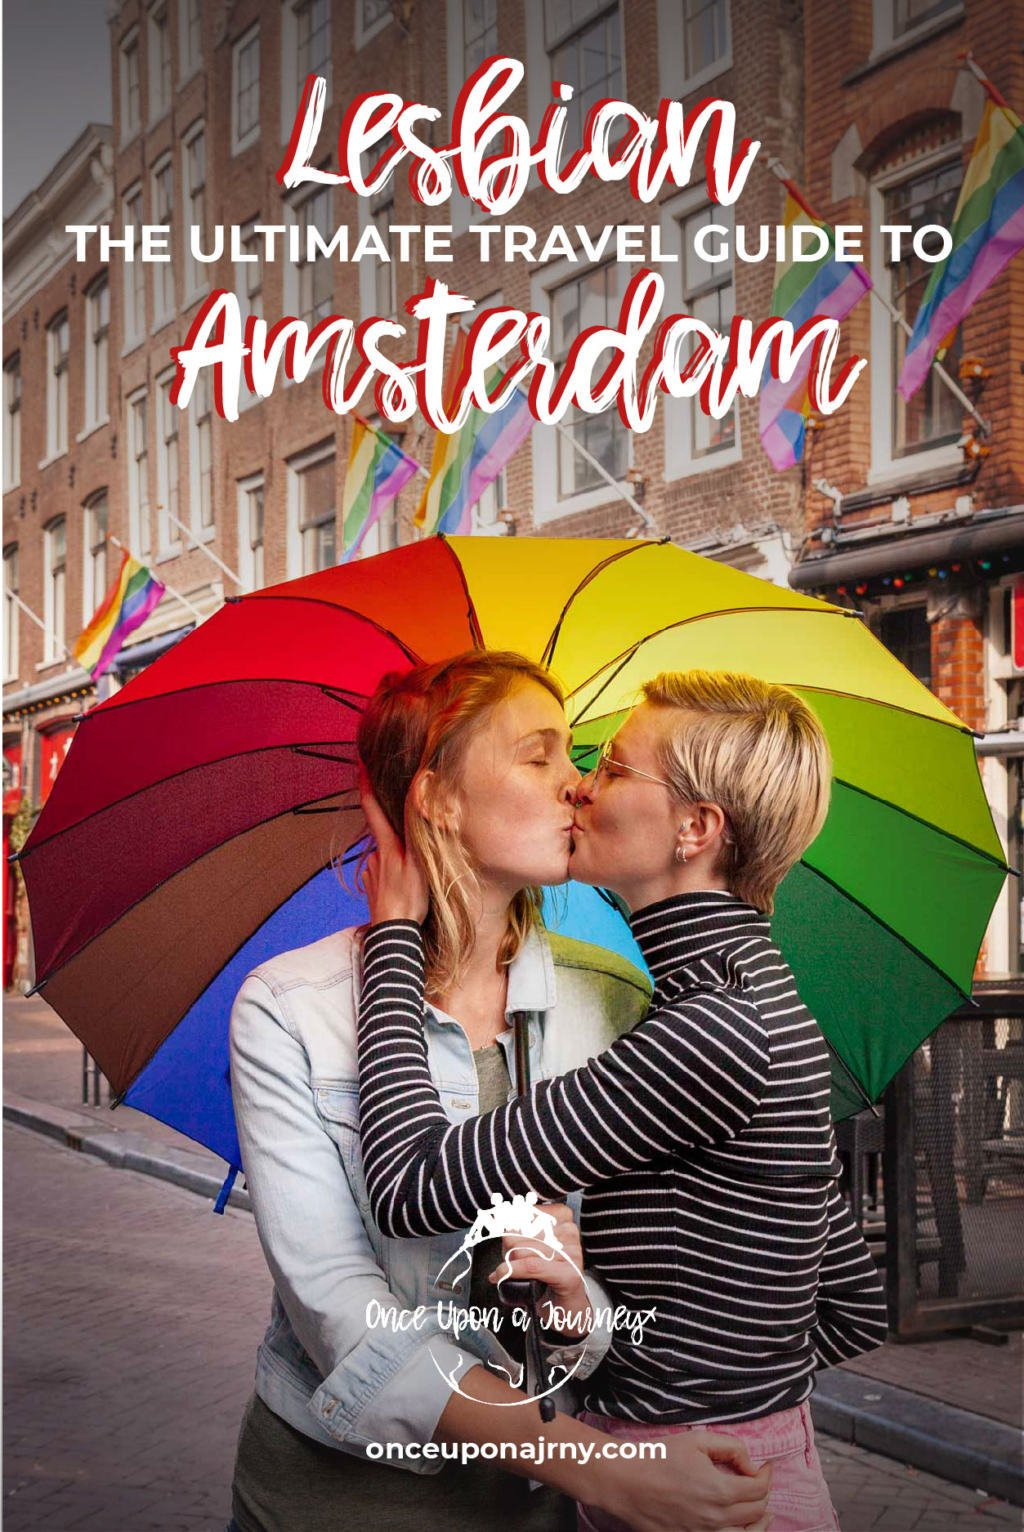 The Ultimate Travel Guide to Lesbian Amsterdam | Once Upon A Journey LGBT Travel Blog